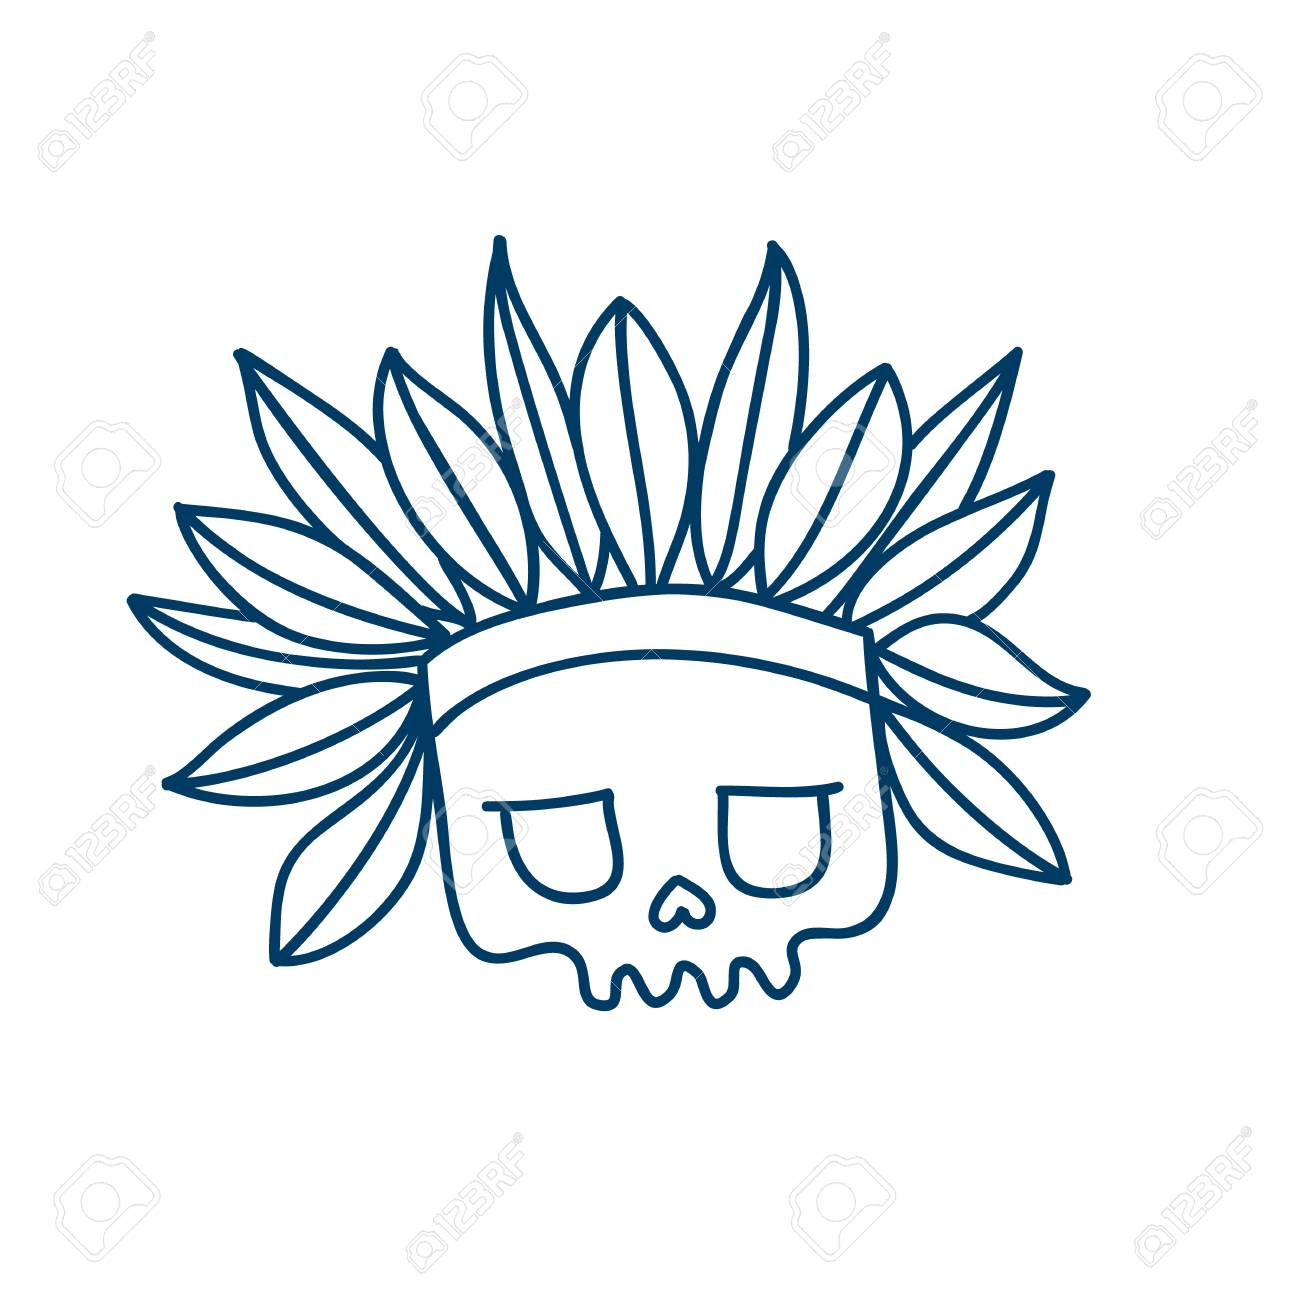 hight resolution of skull line icon with indian headdress with feathers temporary tatoo design halloween character